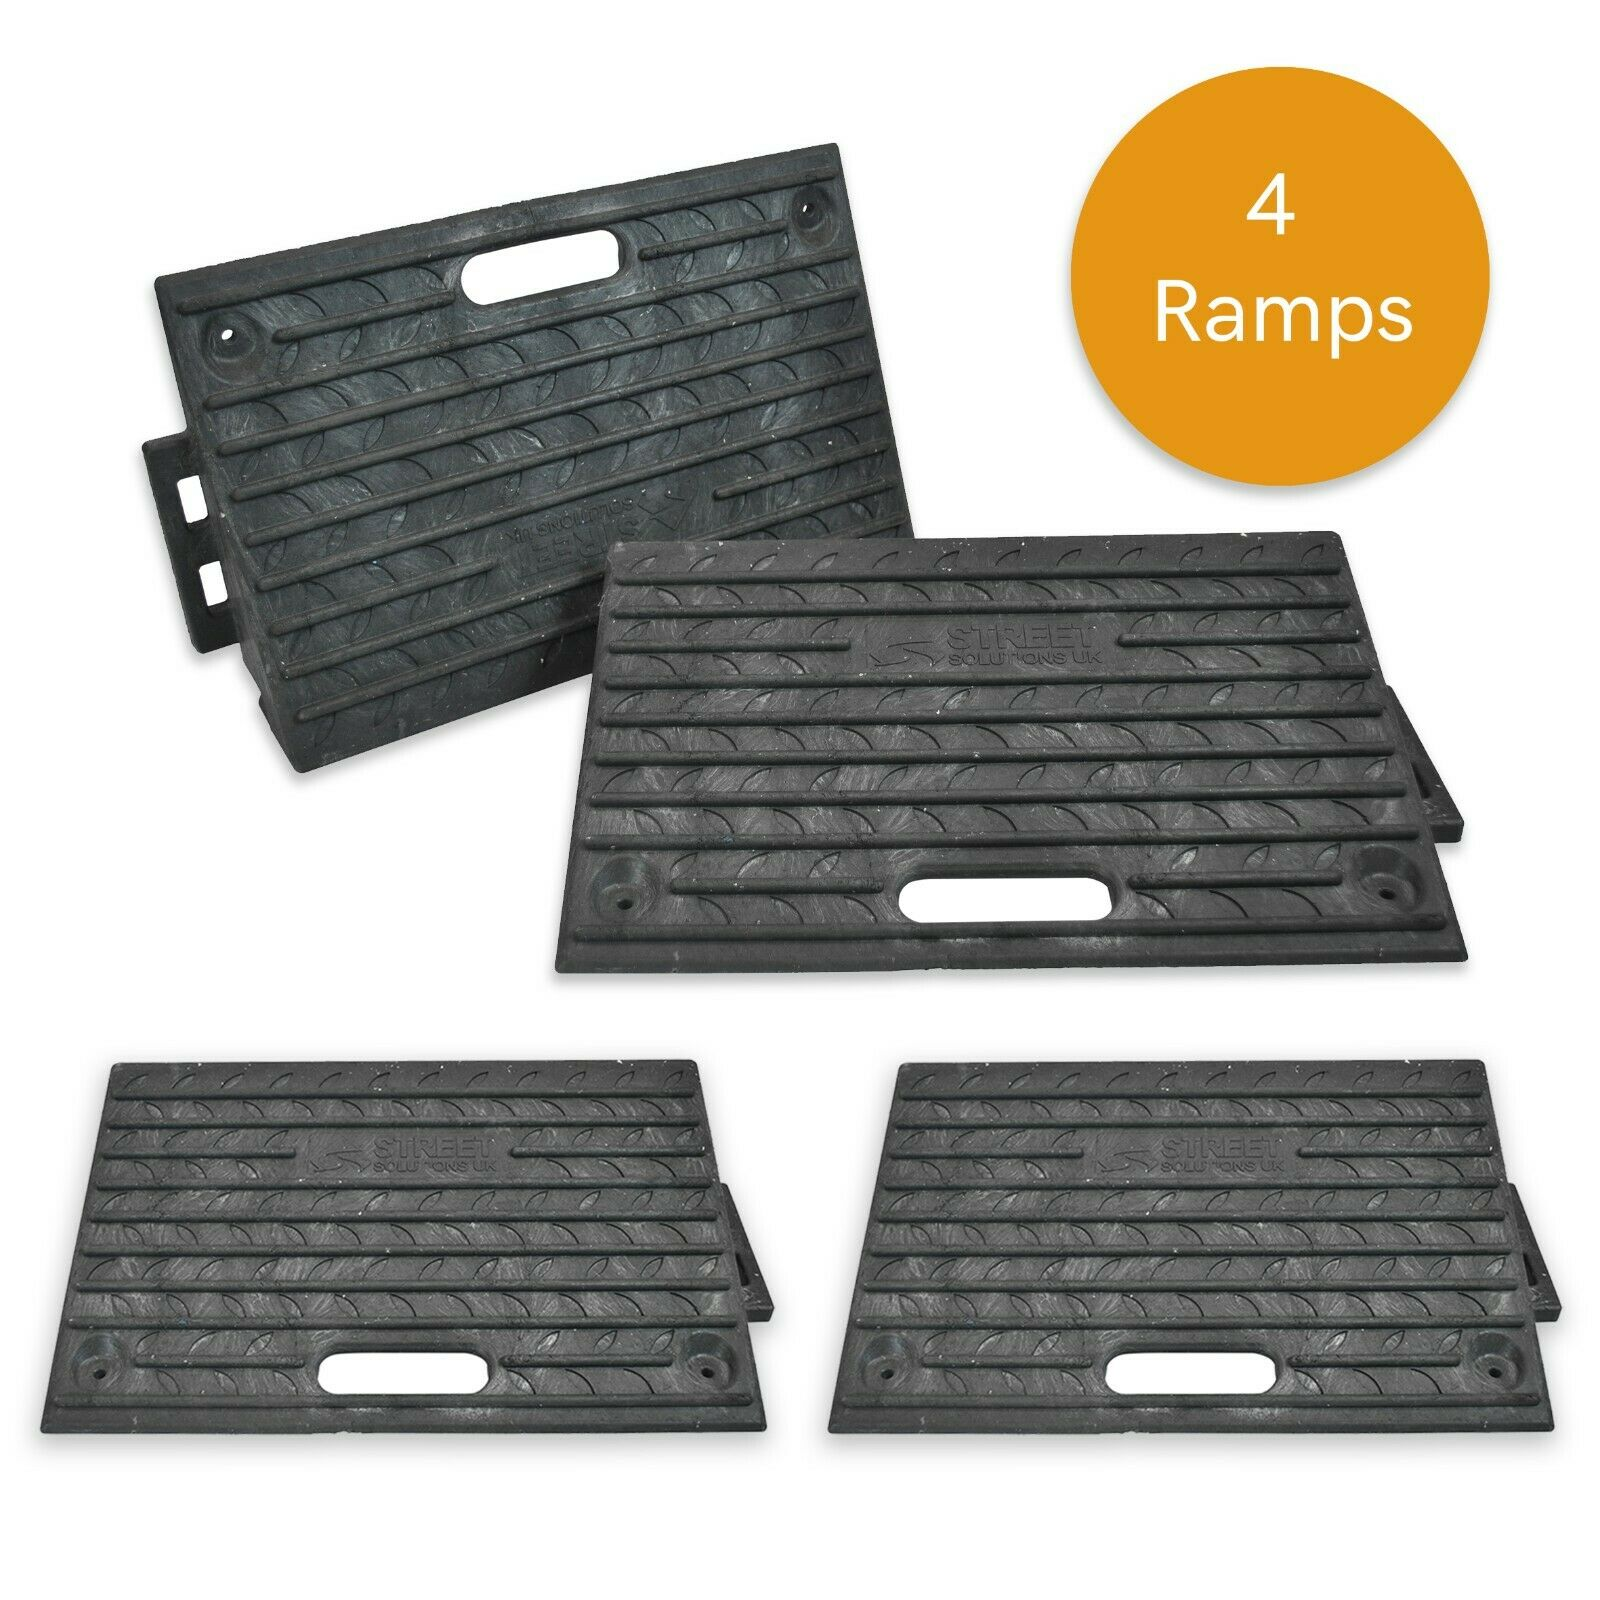 4 x Heavy Duty Kerb Access Ramps in Black   Perfect for HGV Usage Brand New